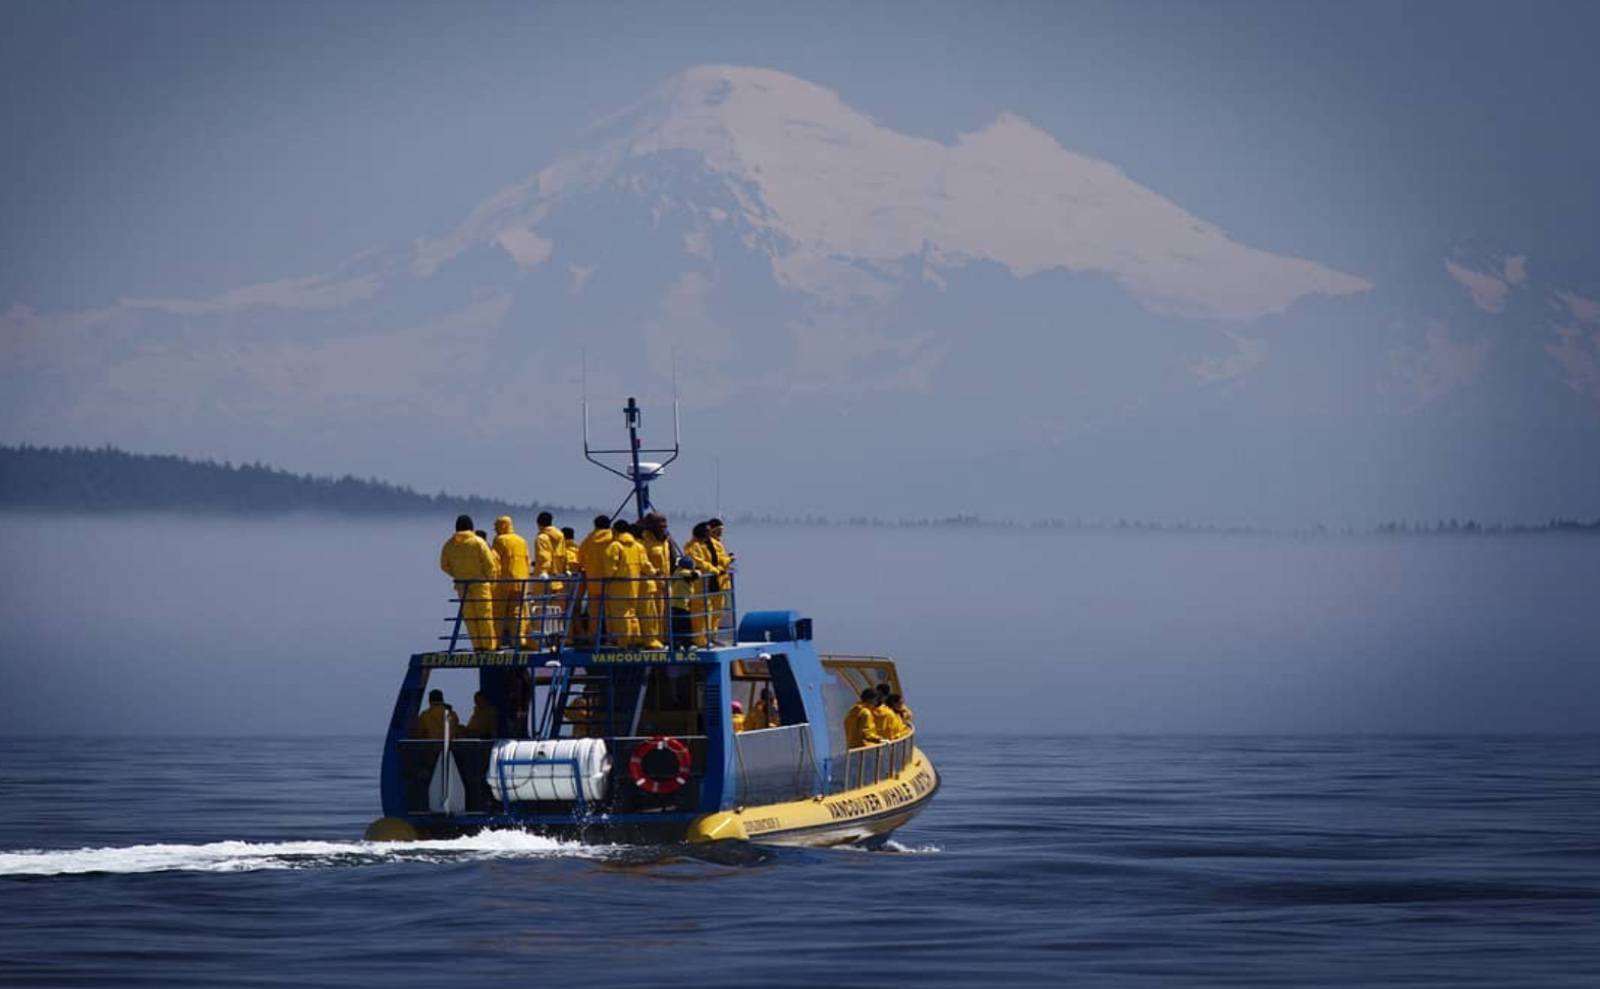 A Vancouver Whale Watch boat passes in front of Mt. Baker